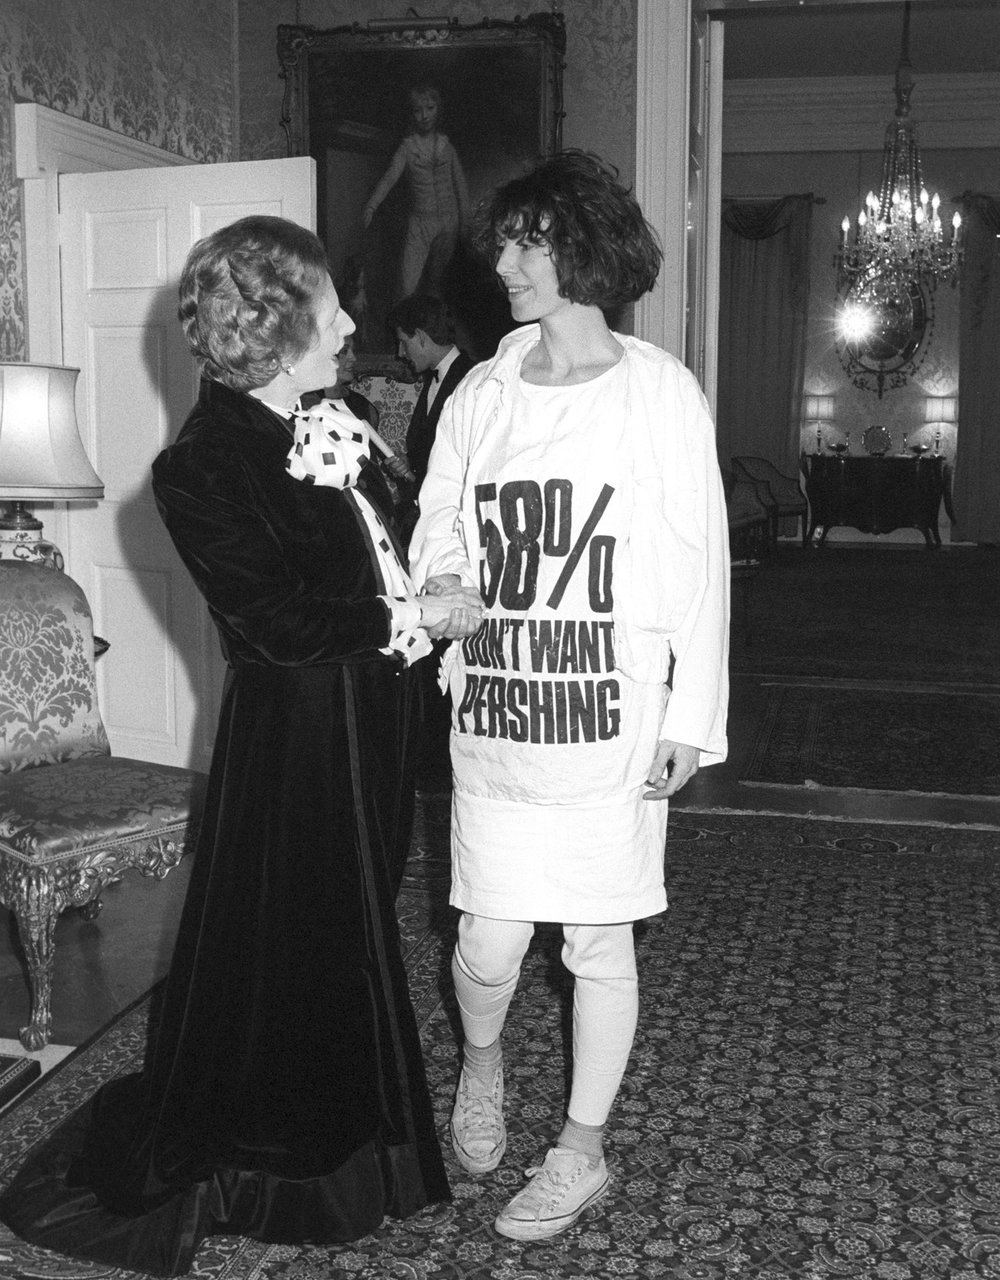 Hamnett meeting then Prime Minister Margaret Thatcher, wearing a t-shirt underlining a lack of public support for US Pershing missiles being stationed in the UK | Image  Via